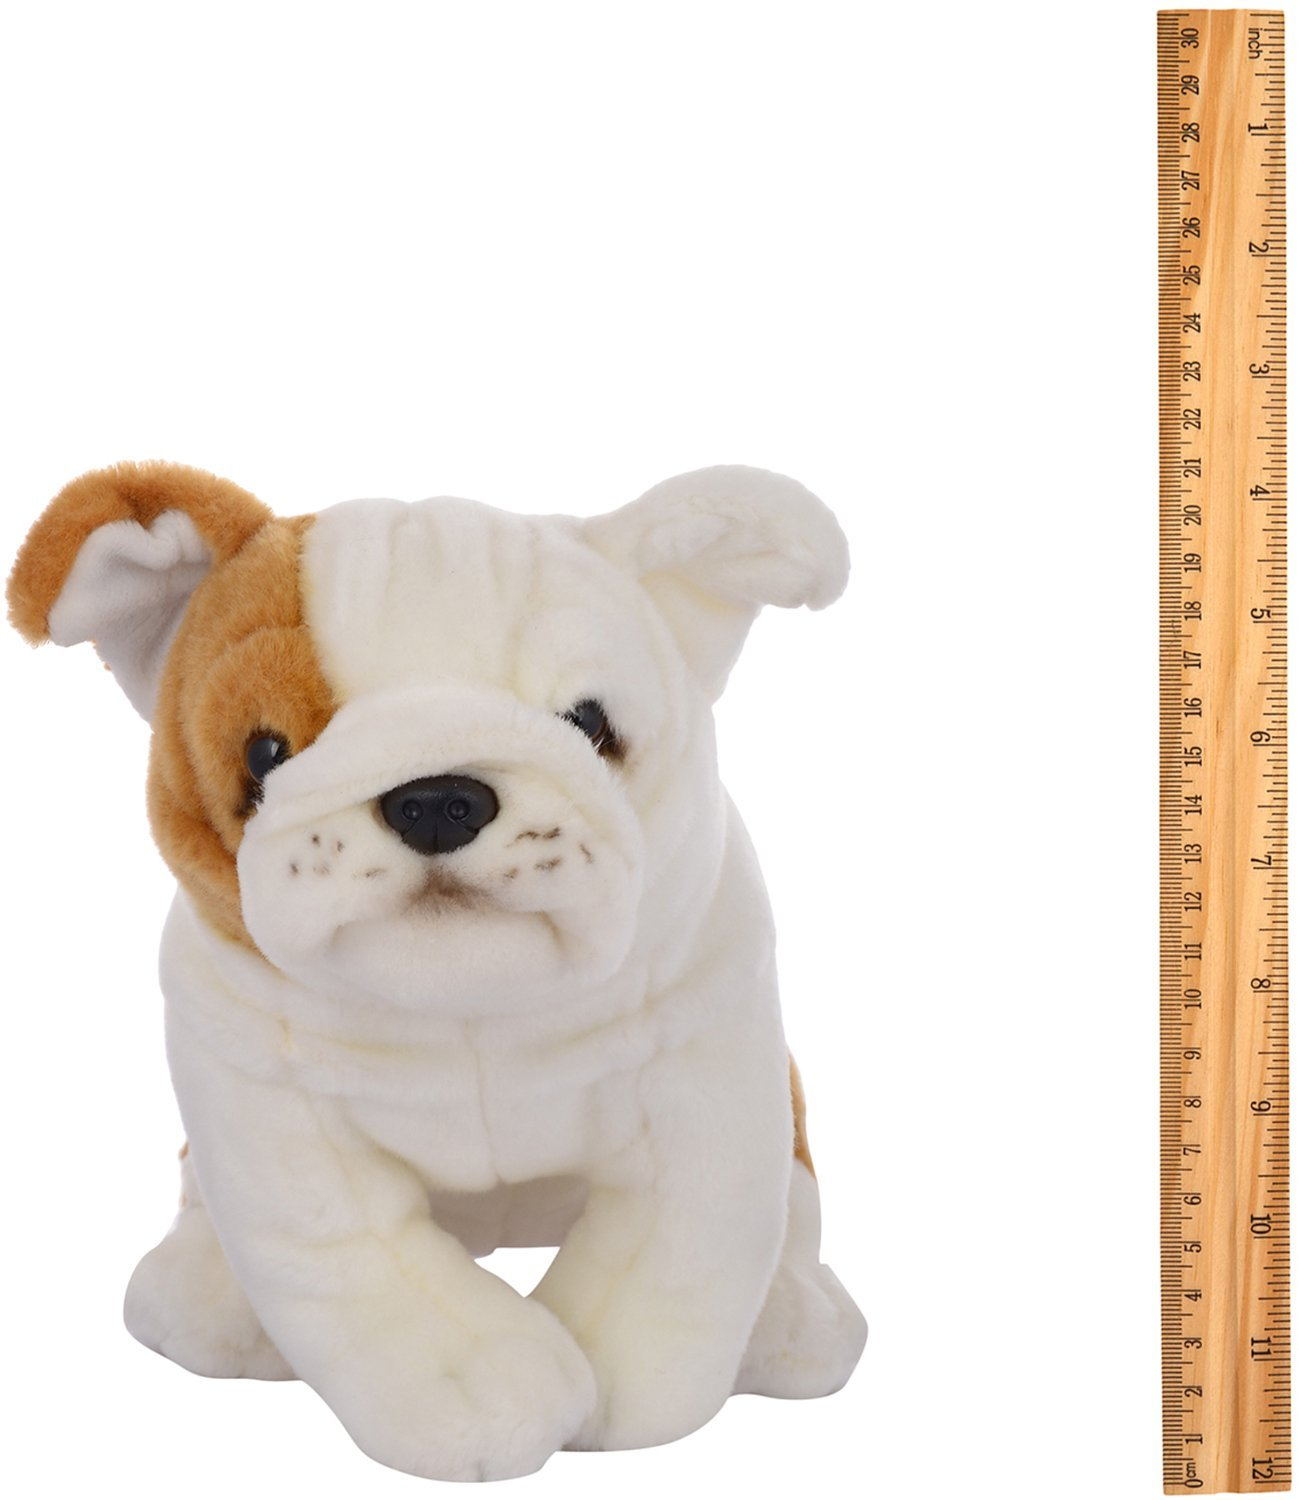 Buy Hamleys Bulldog Soft Toy White 8 inch line at Low Prices